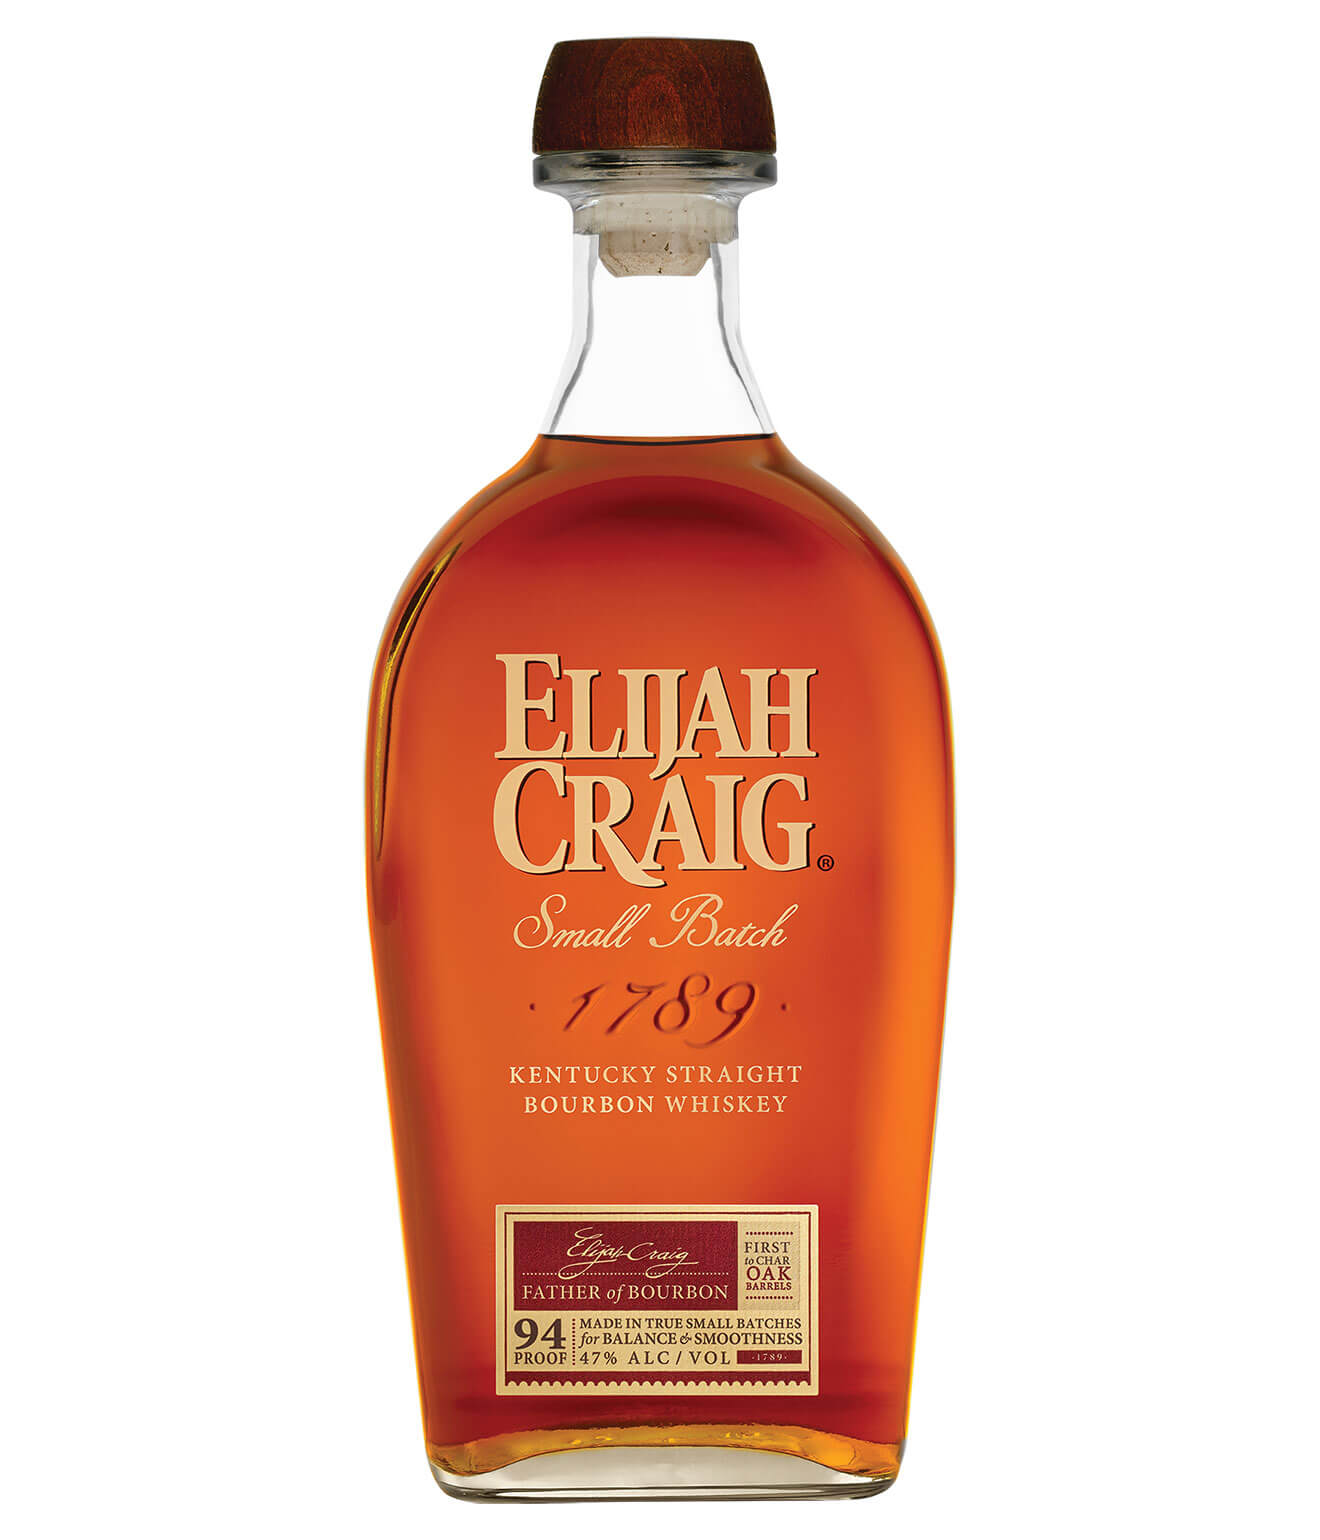 Elijah Craig Small Batch 1789, bottle on white